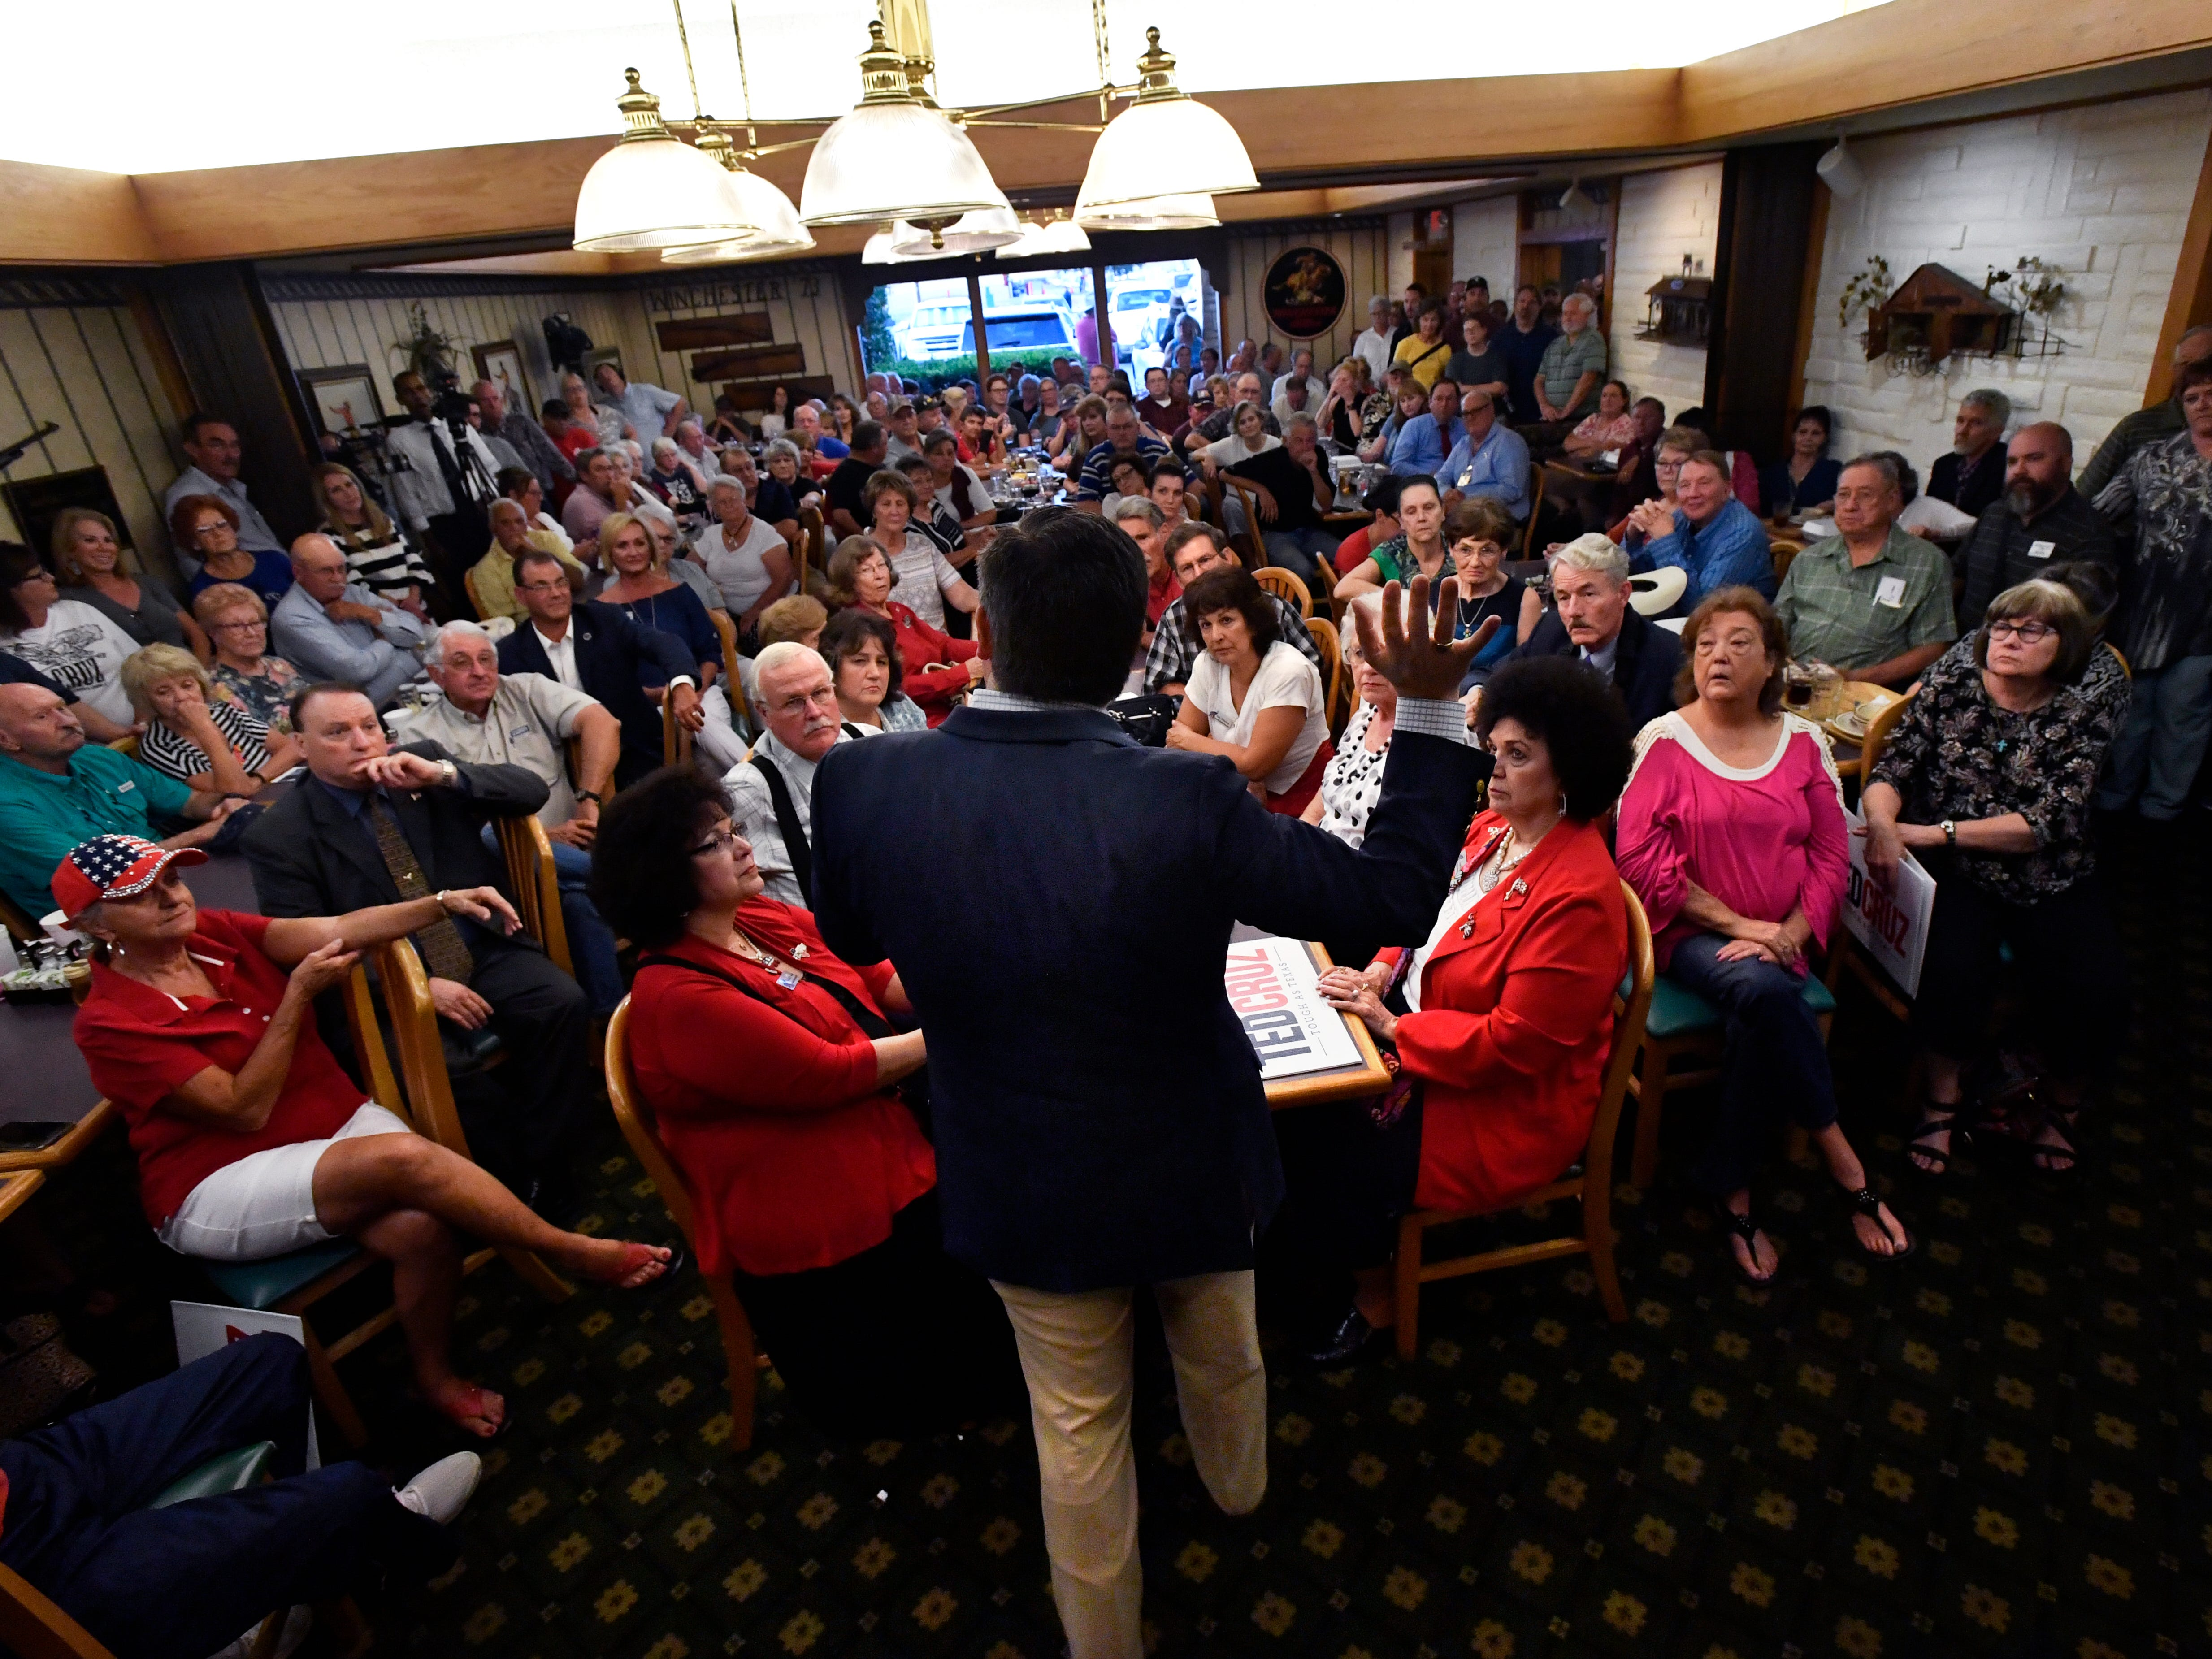 Audience members listen as Senator Ted Cruz answers their questions during a town hall meeting in Brownwood Thursday August 9, 2018. Cruz spoke to and greeted supporters for over 90 minutes at Underwood's Cafeteria.